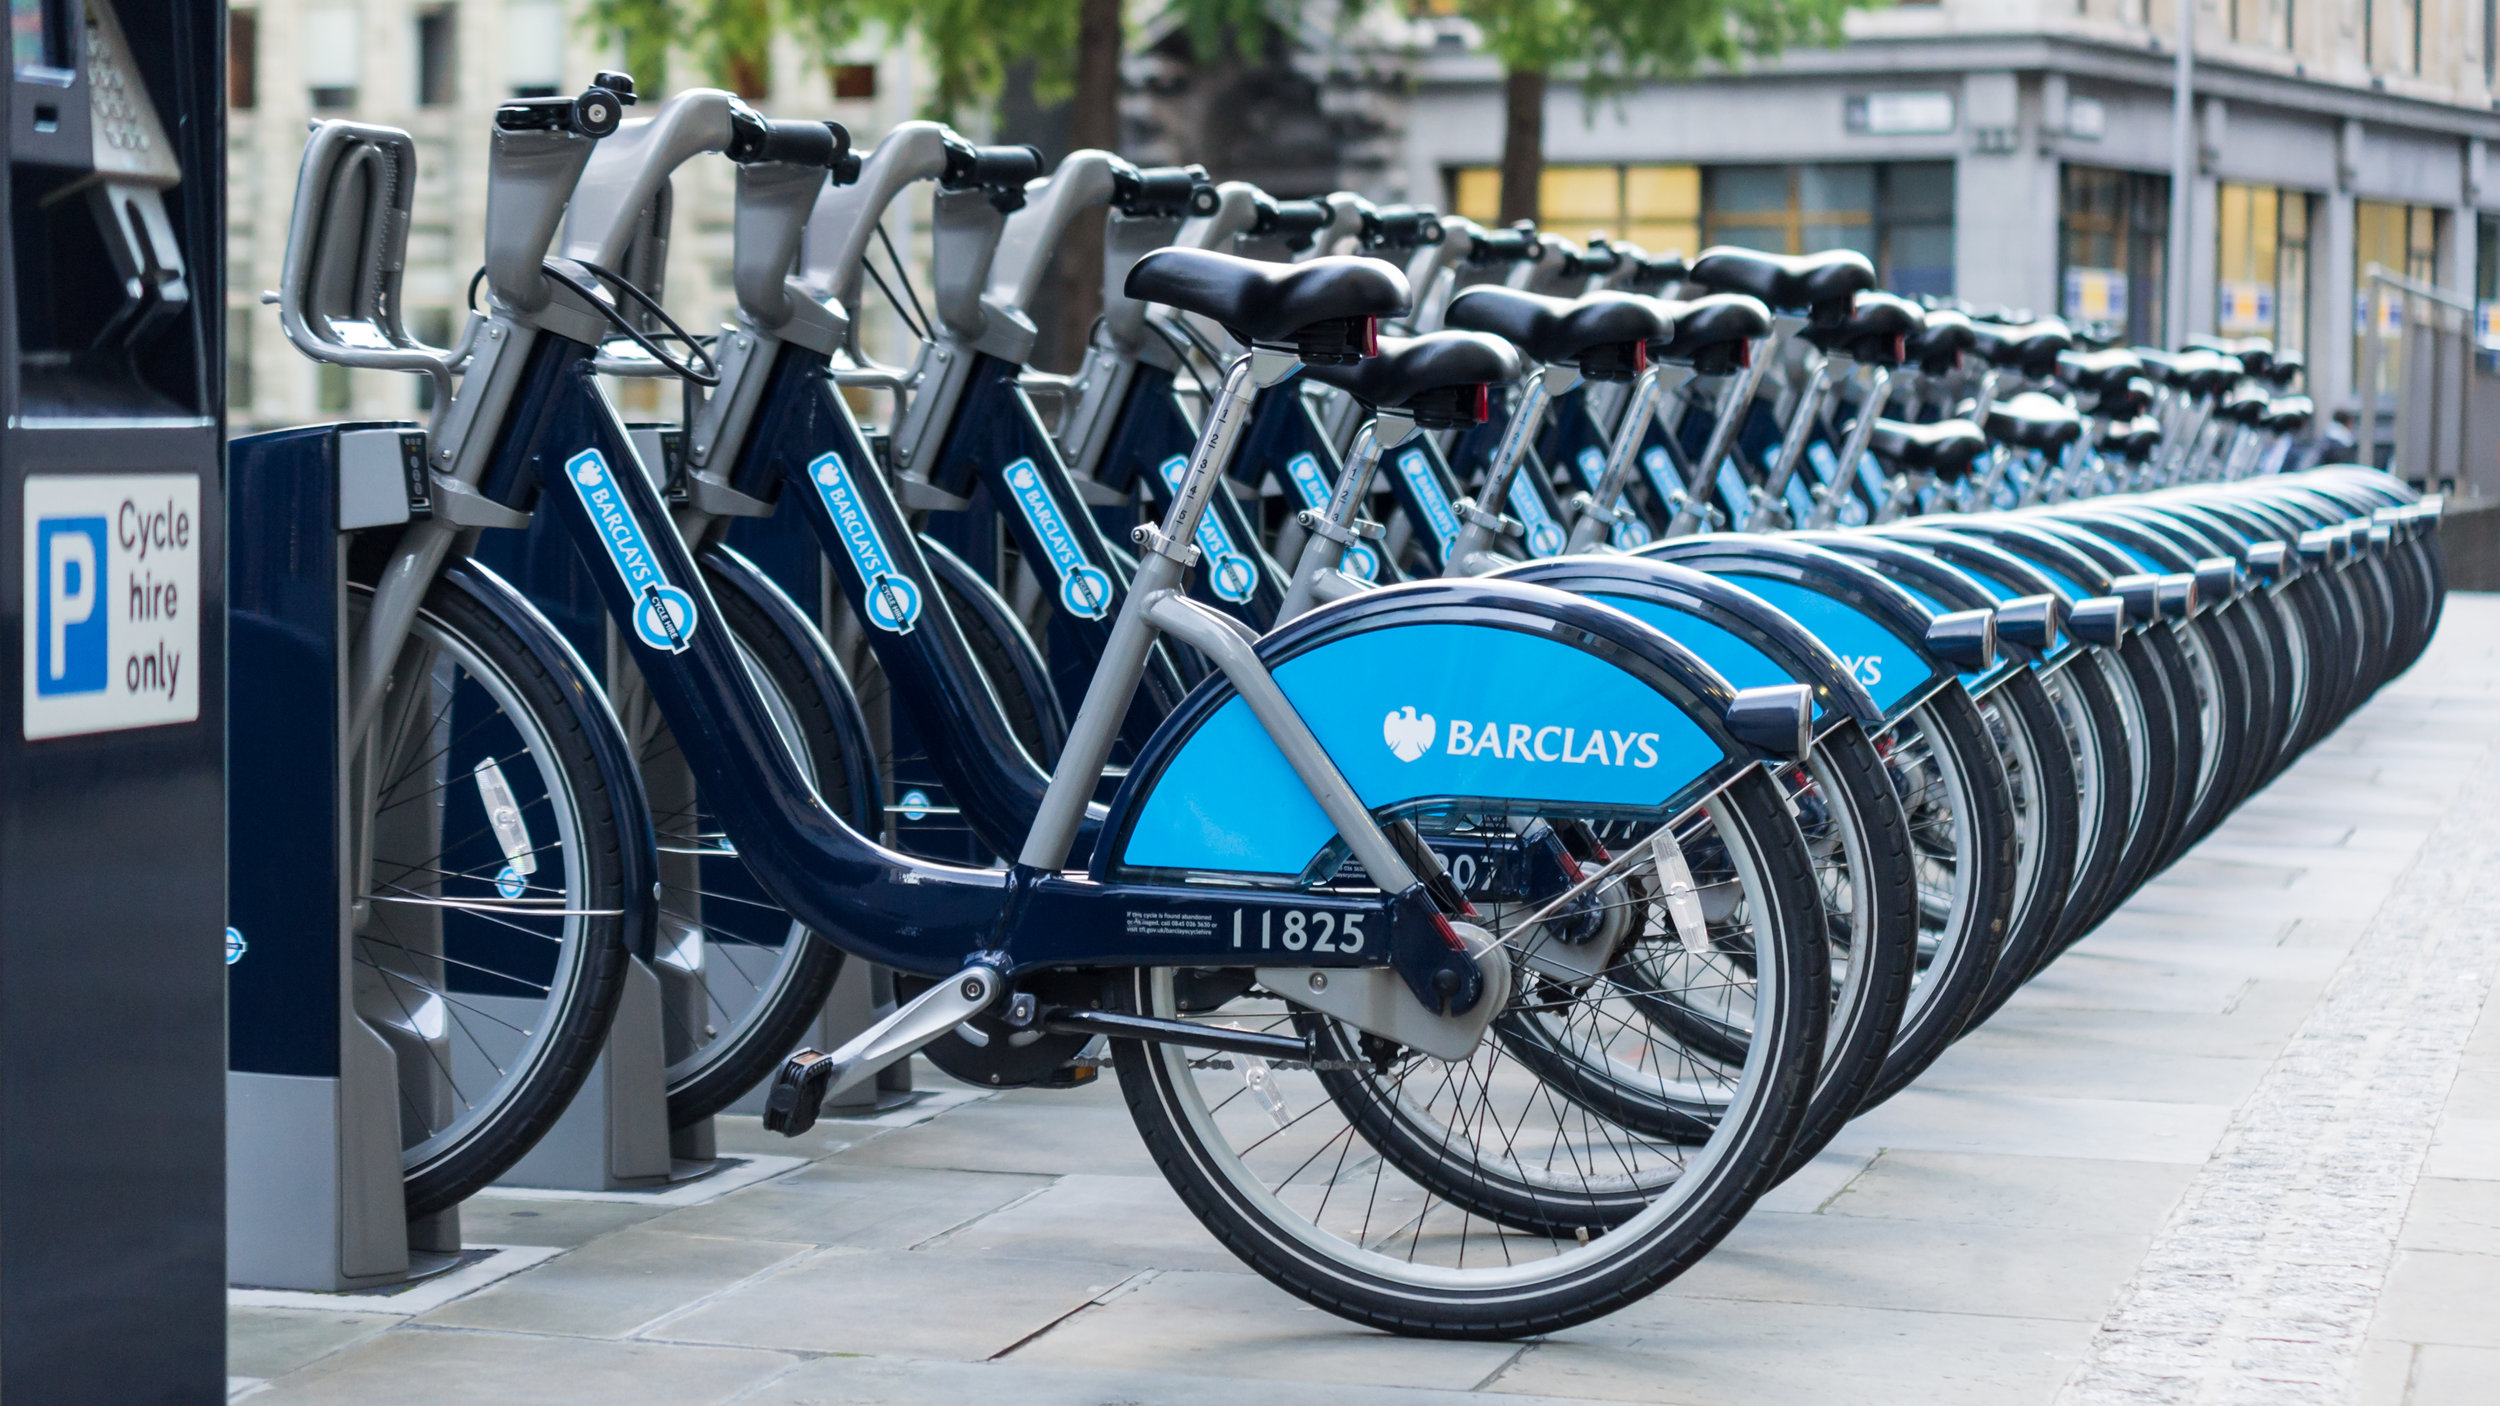 Barclays_Cycle_Hire_St._Mary_Axe_Aldgate.jpg